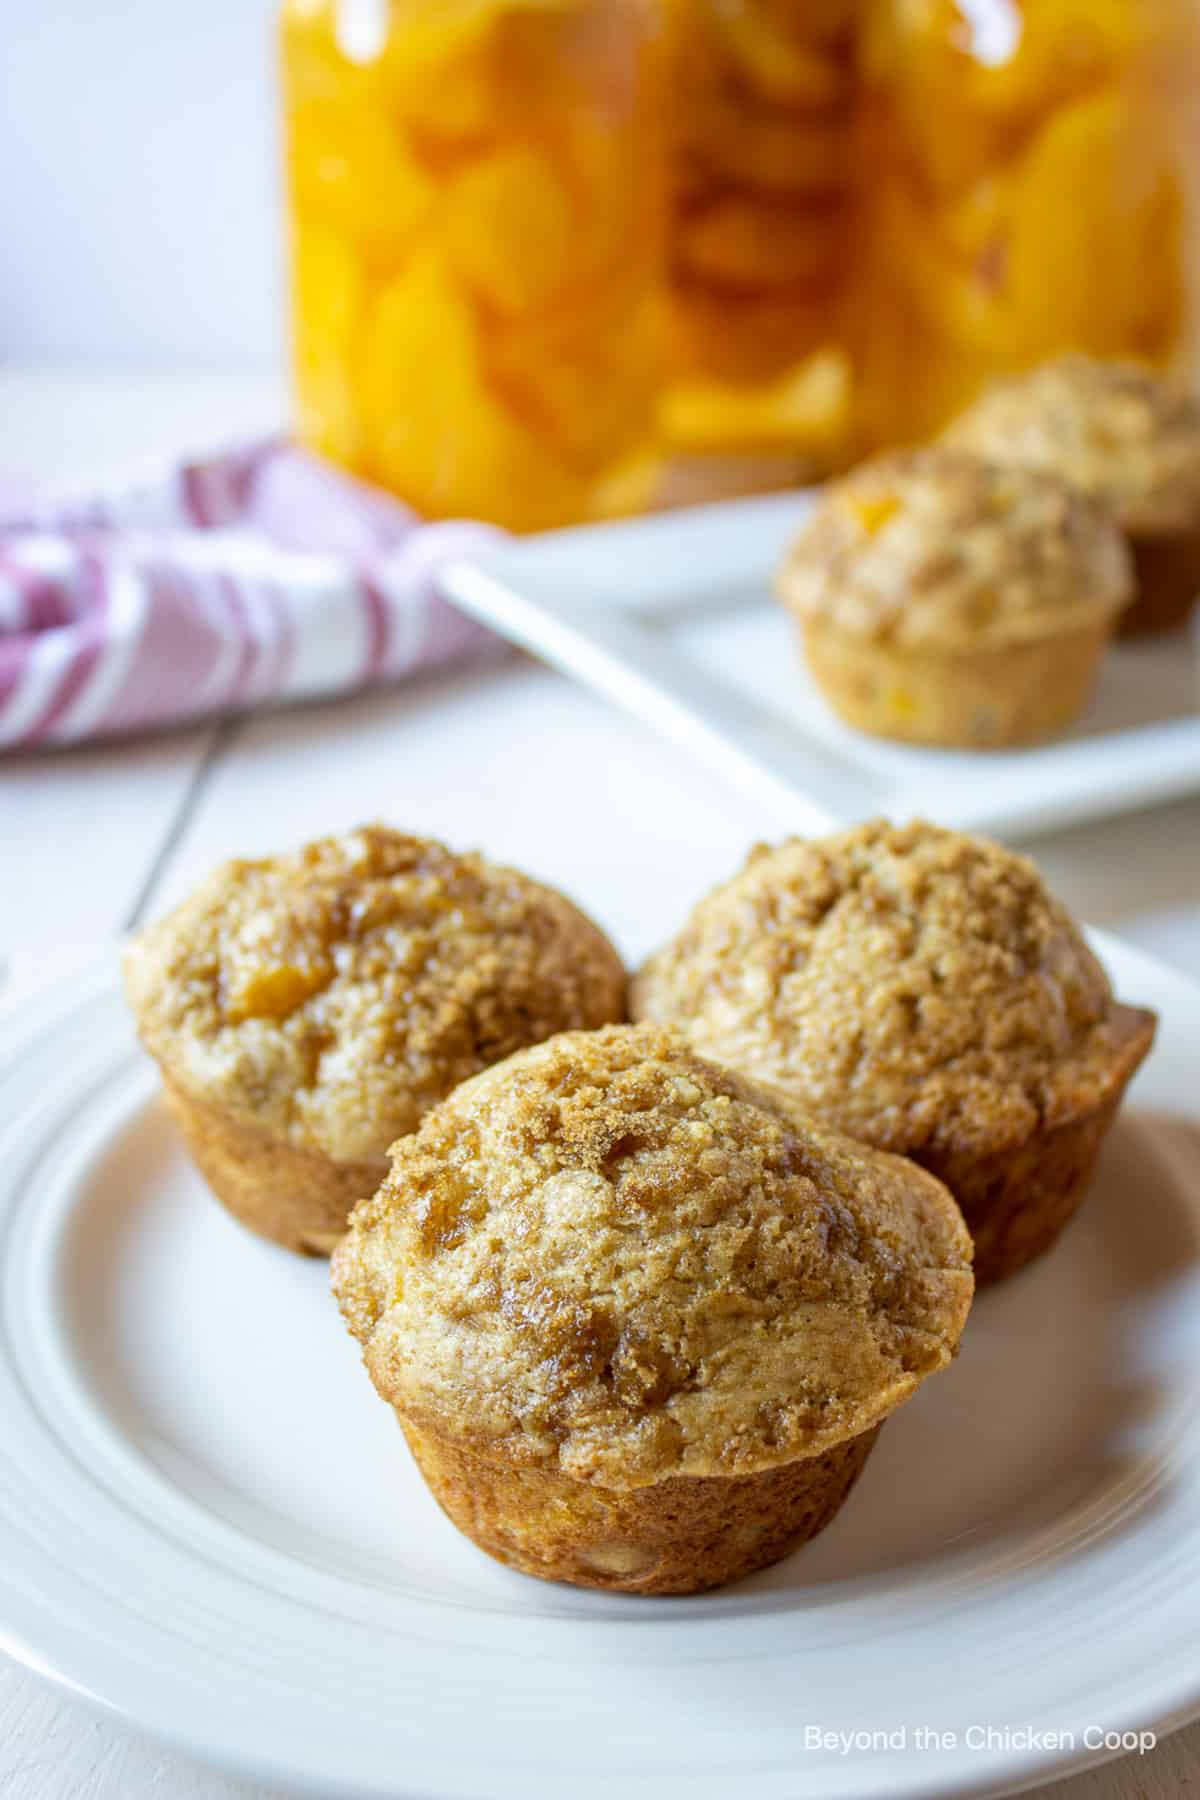 Three muffins with a crumble topping on a white plate.